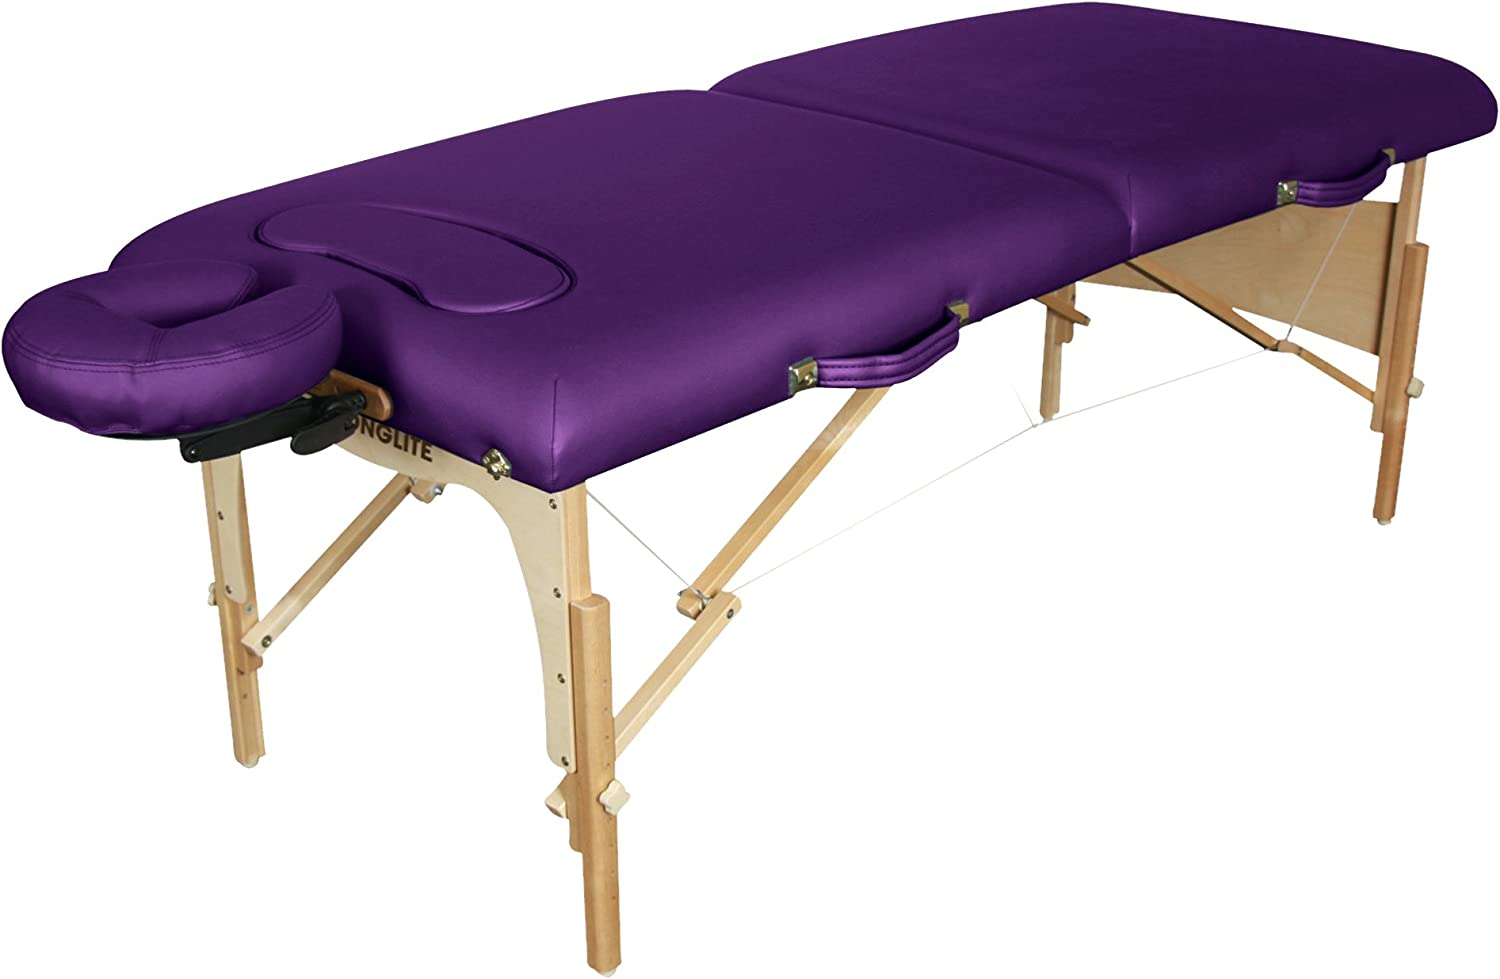 Stronglite Figure Fit Portable Massage Table Package – Unique Comfort Cut-Out for Extra Breast Support